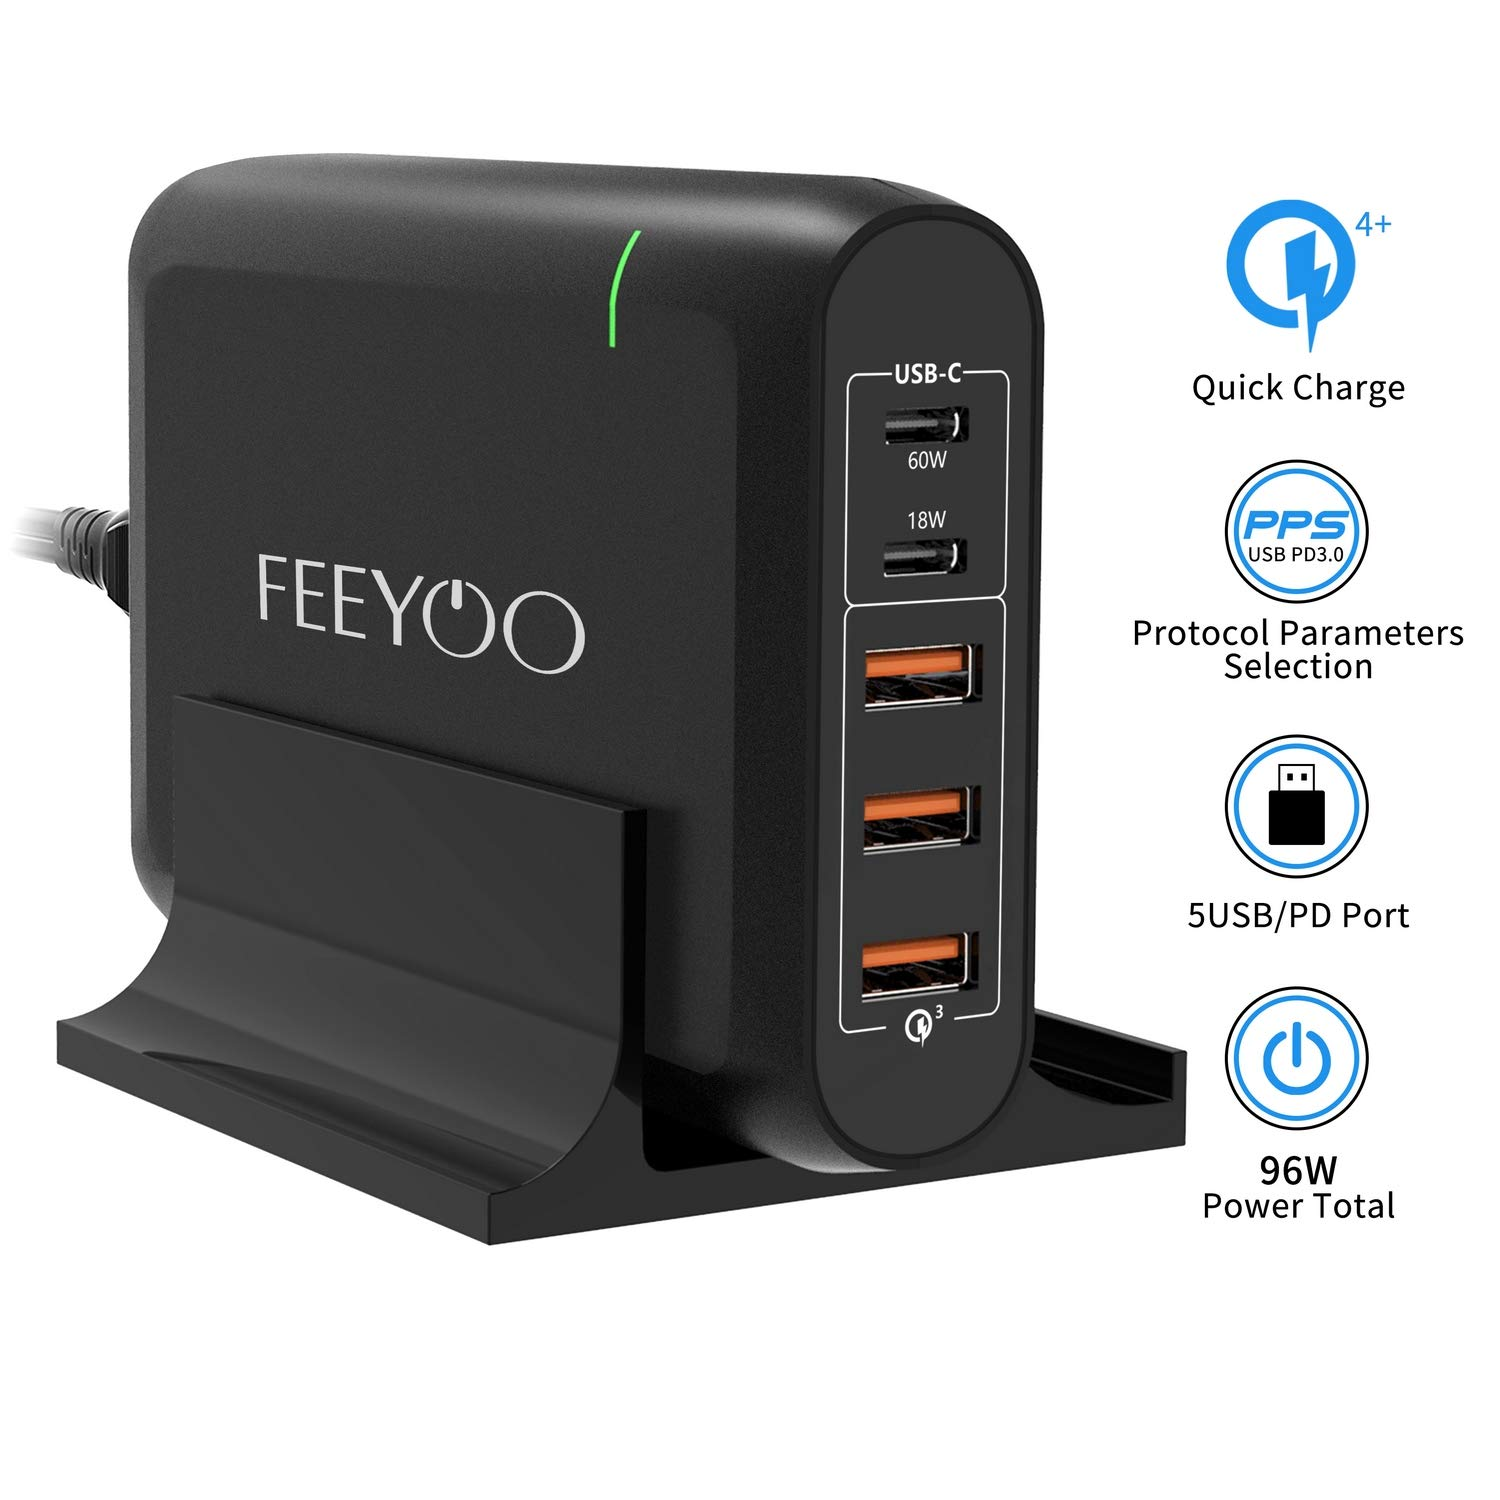 USB C Wall Charger, FEEYOO 96W 5-Port USB Type-C Desktop Charger with 60W/18W Power Delivery Port and Quick Charger 3.0 3 Port Compatible with MacBook Air 2018, iPad Pro 2018, iPhone Xs/XR/X and More